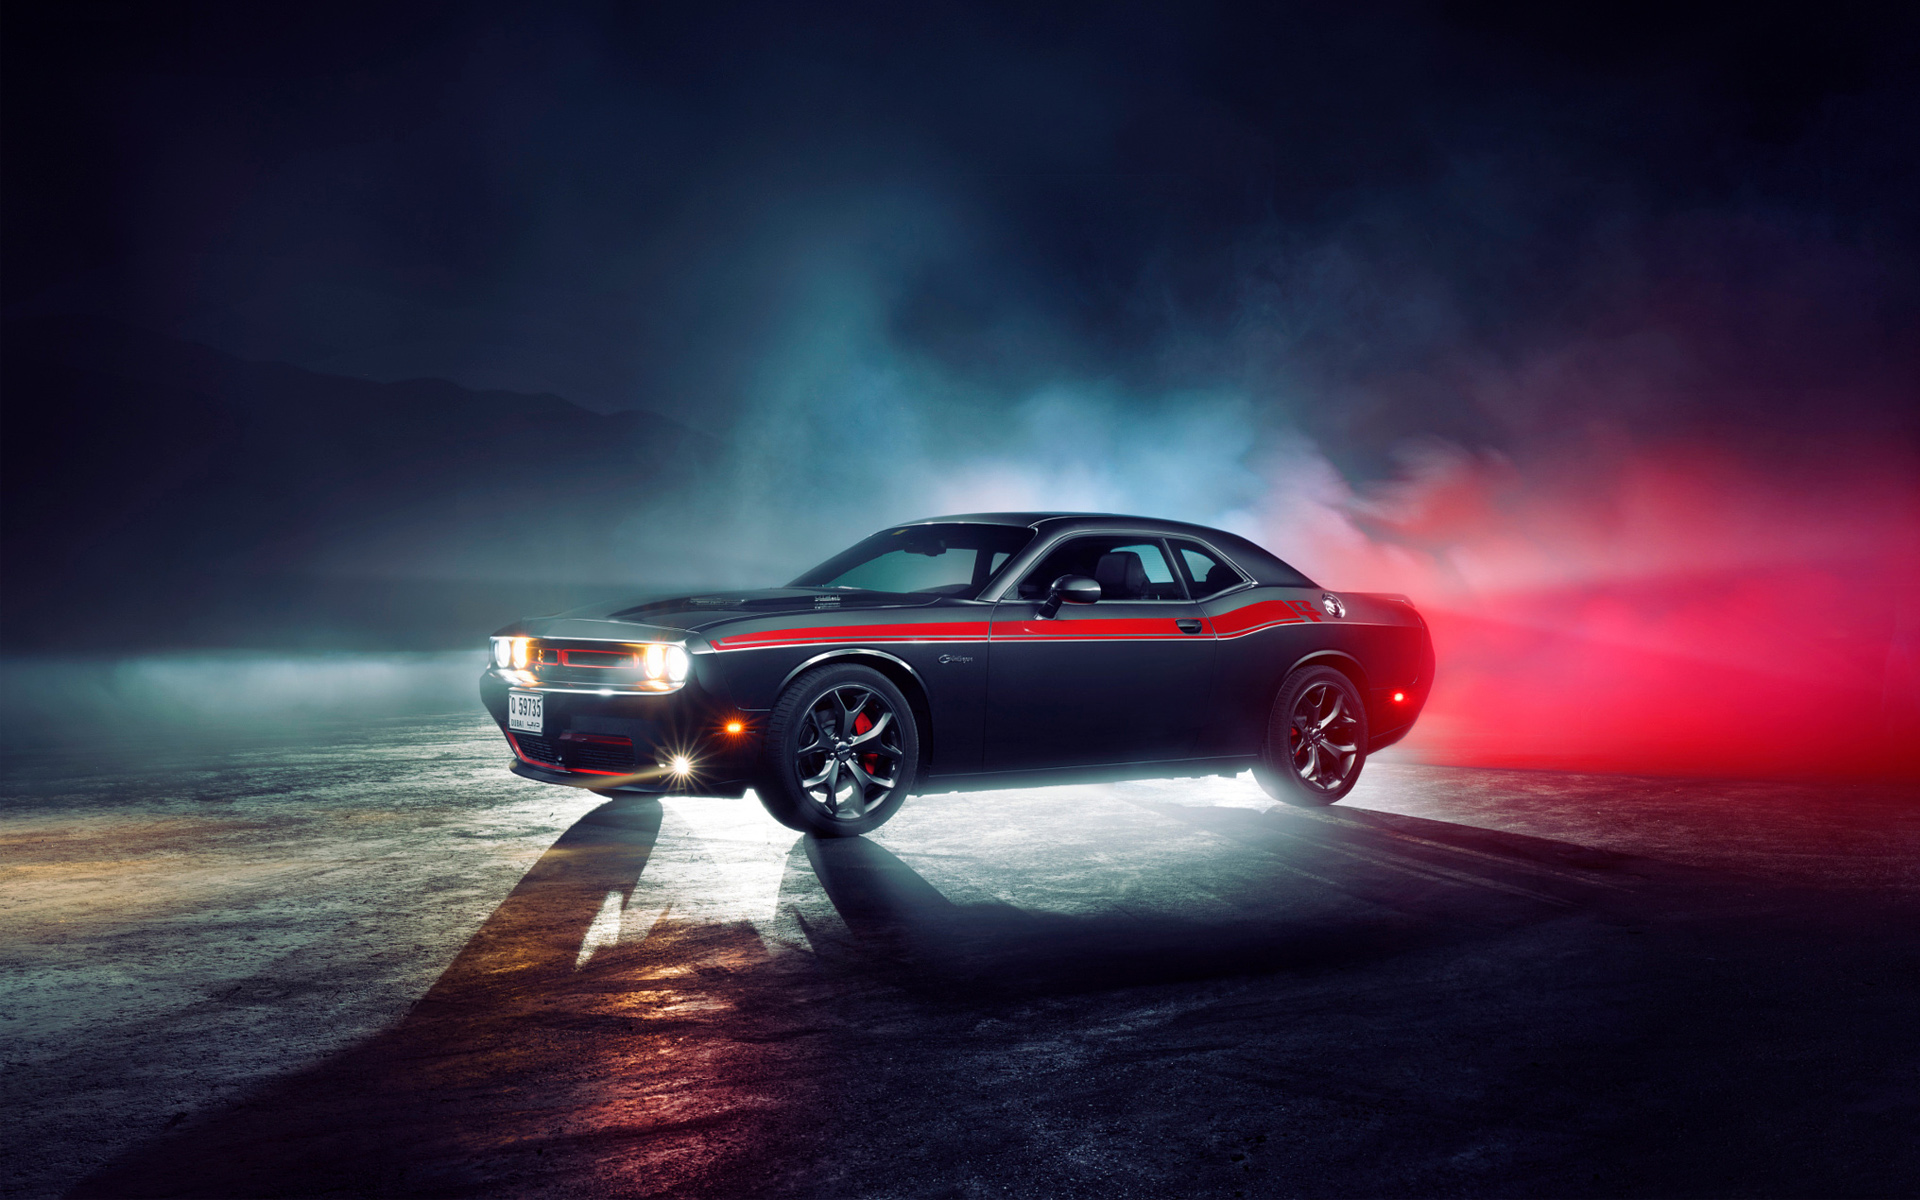 Dodge Challenger Rt Wallpaper Hd Car Wallpapers Id 5855